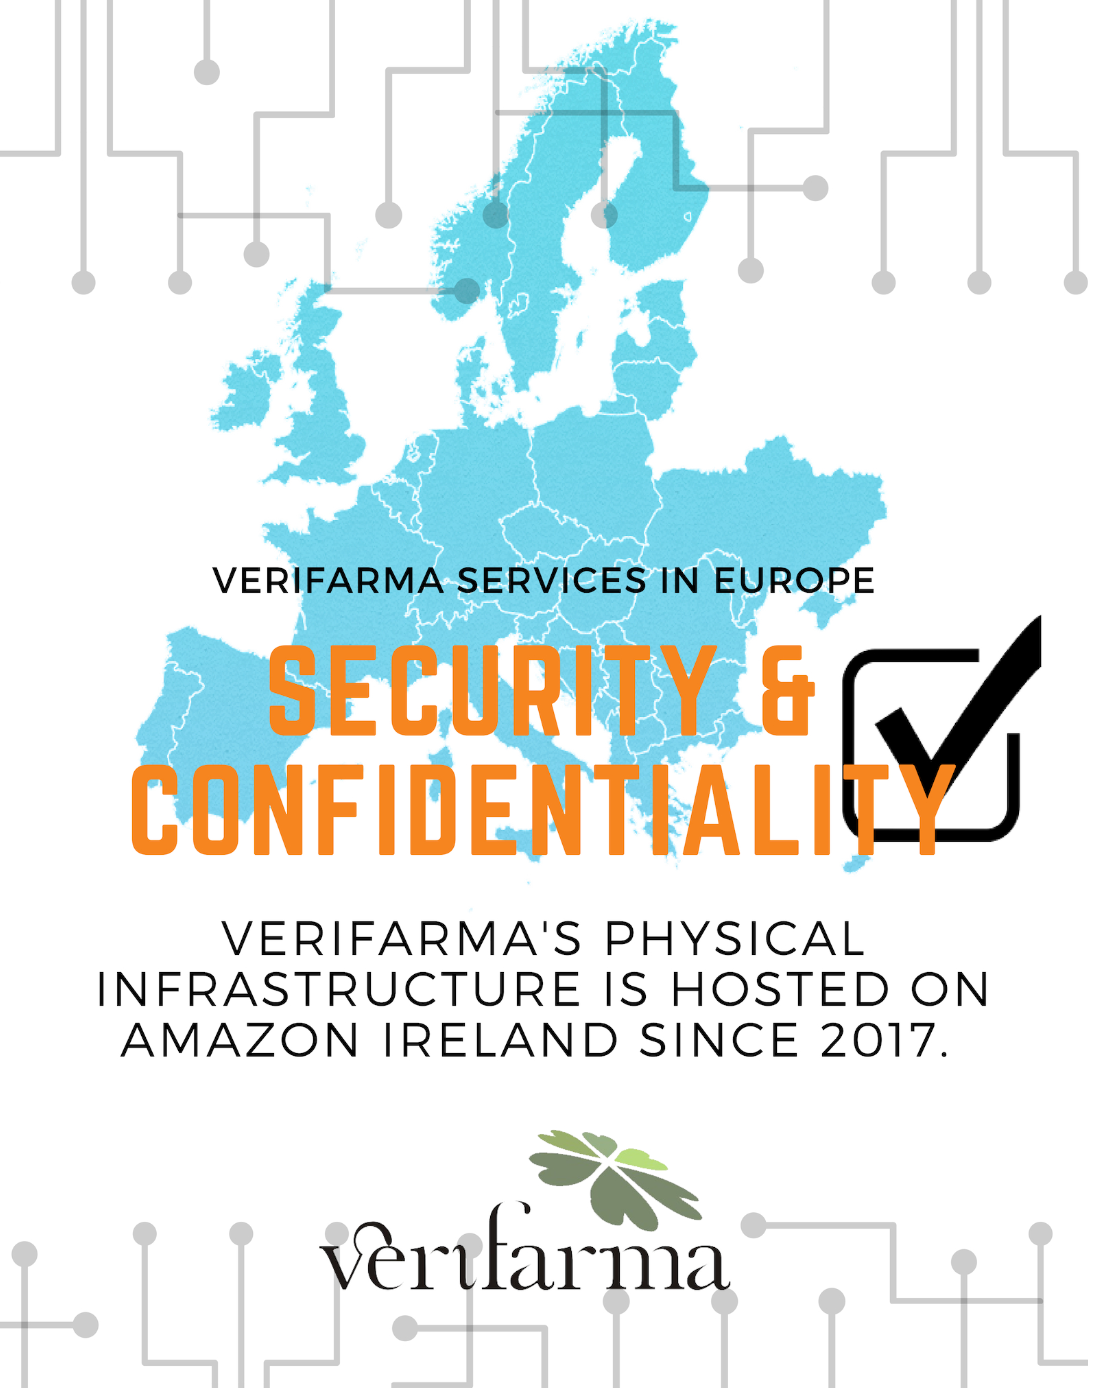 Verifarma Features: Security & Confidentiality